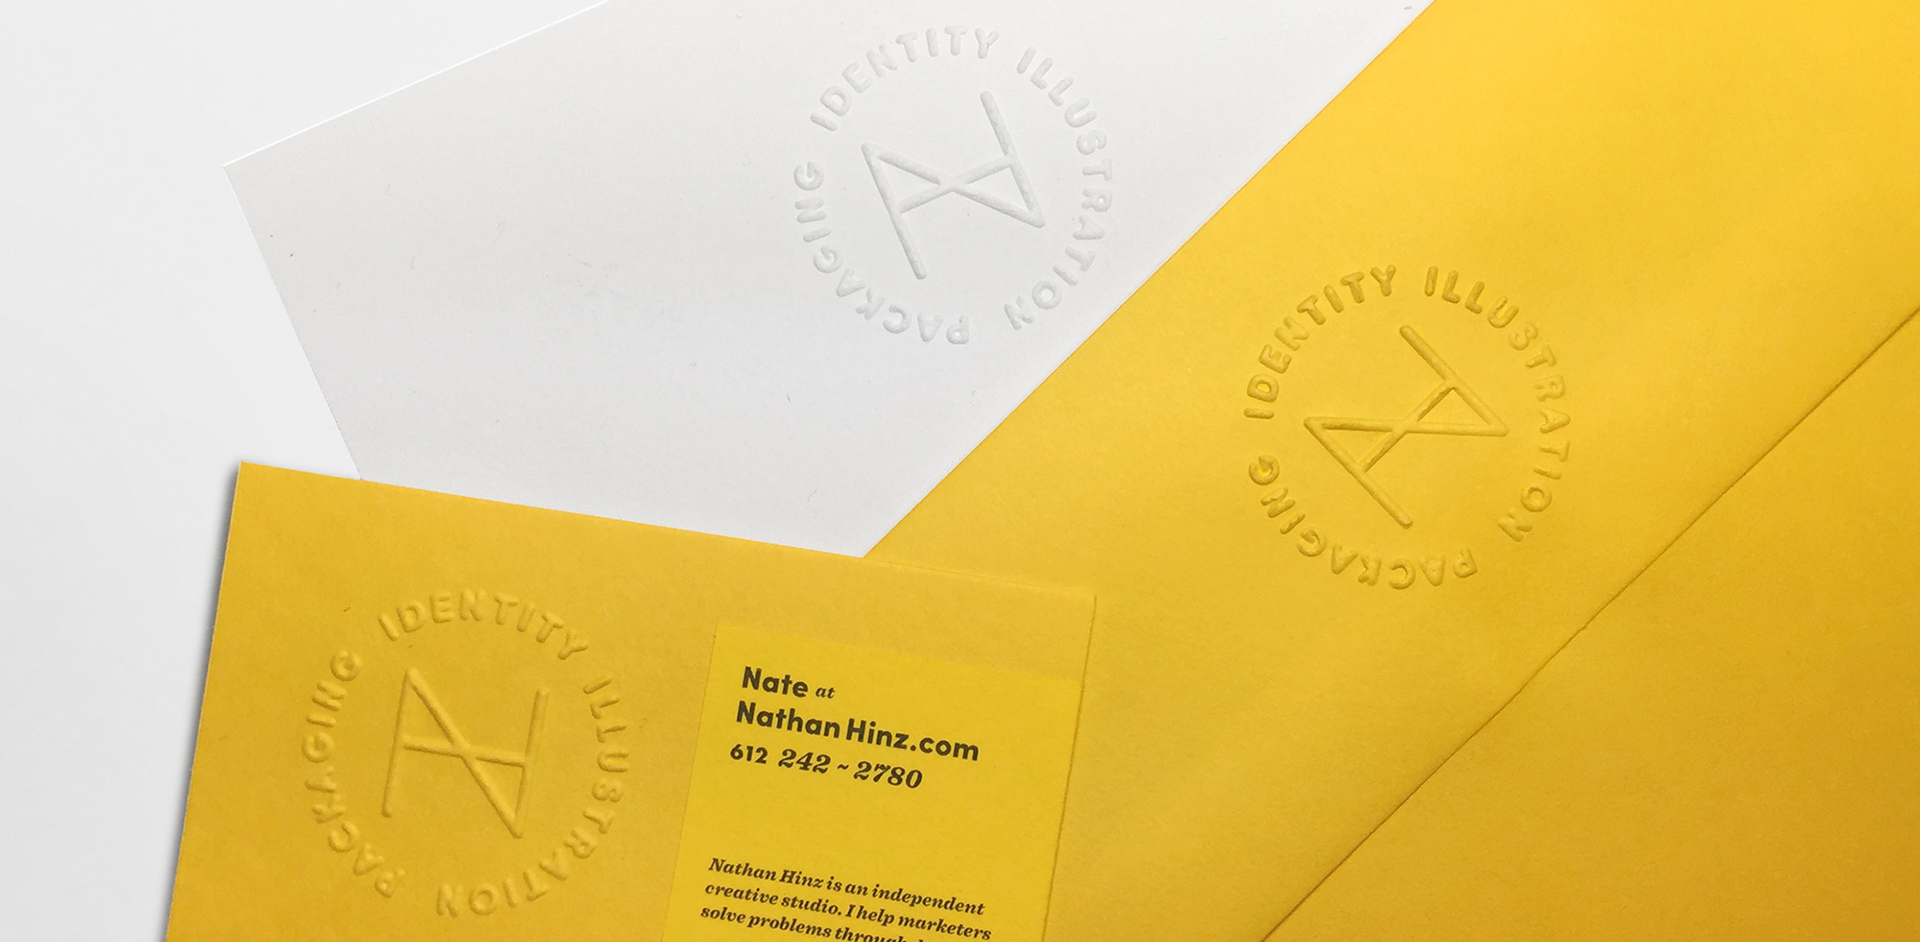 Brand identity packaging and illustration the studio of nathan ive been an independent studio for years and never had business cards i network digitally and its never come up if you need to find someone reheart Gallery